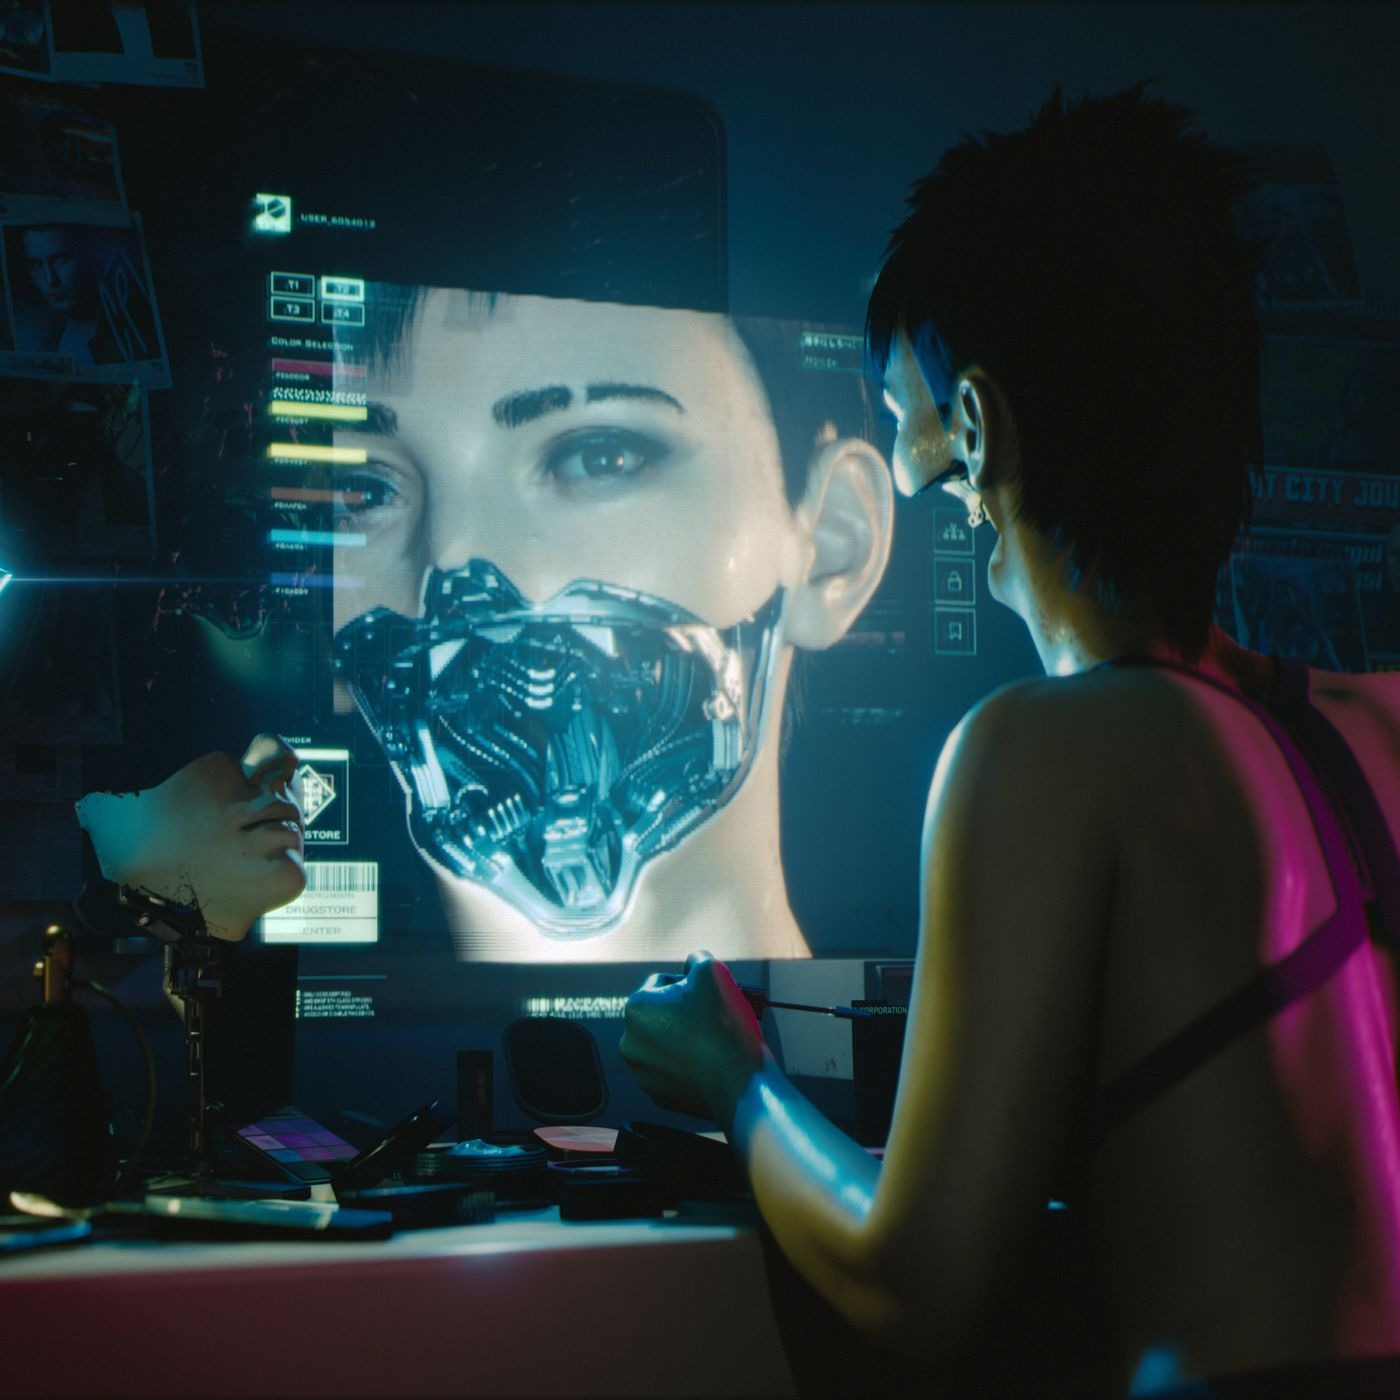 Cyberpunk 2077 will include full nudity for a very important